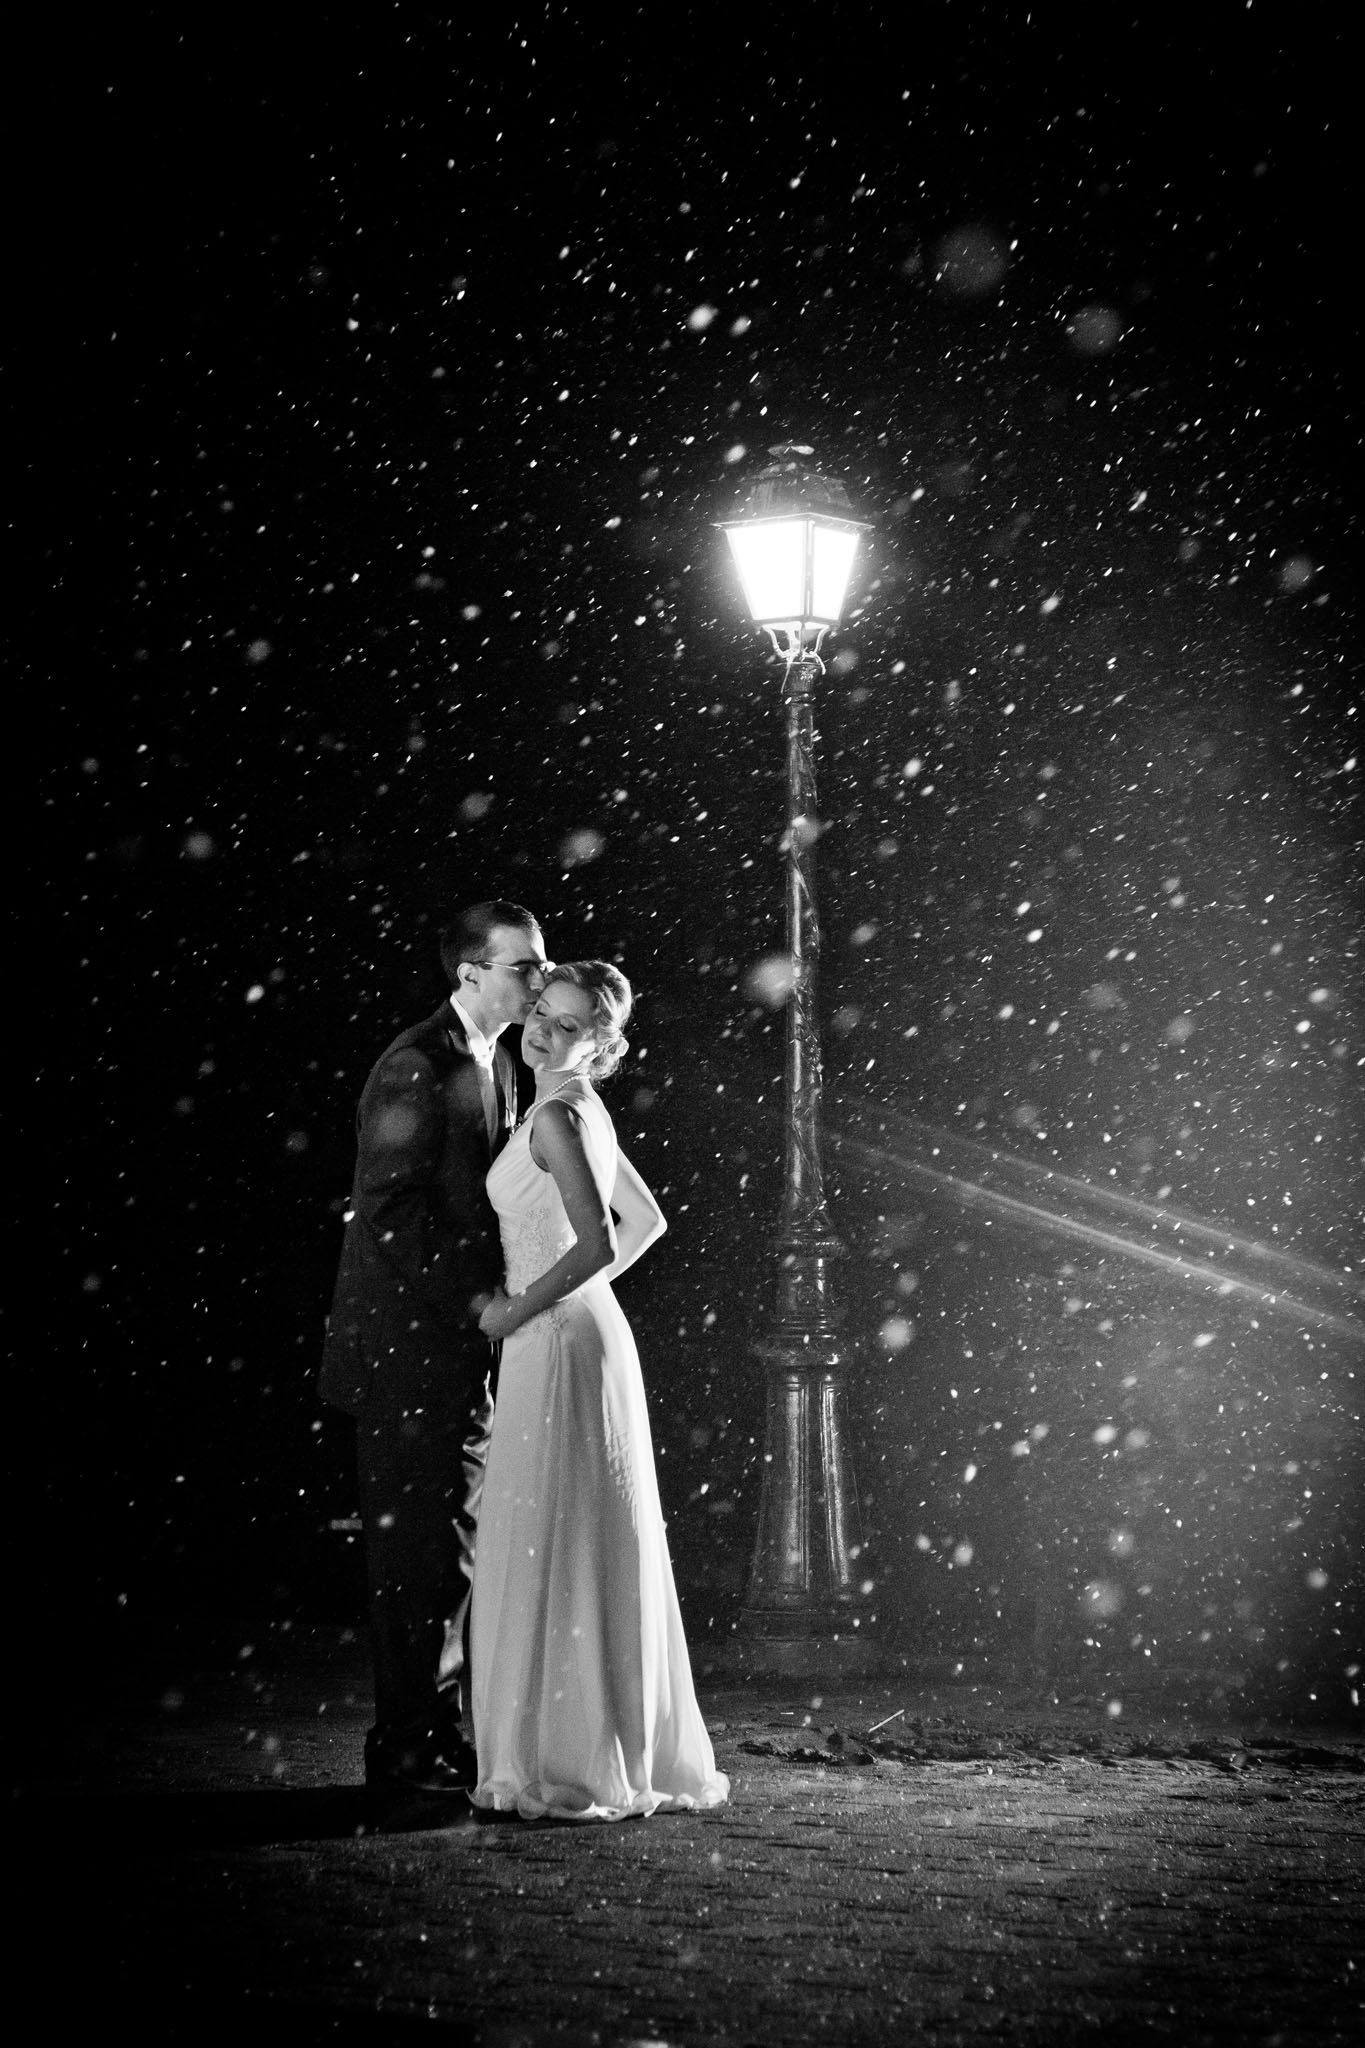 Romantic Wedding photo by wedding photographer Valdur Rosenvald